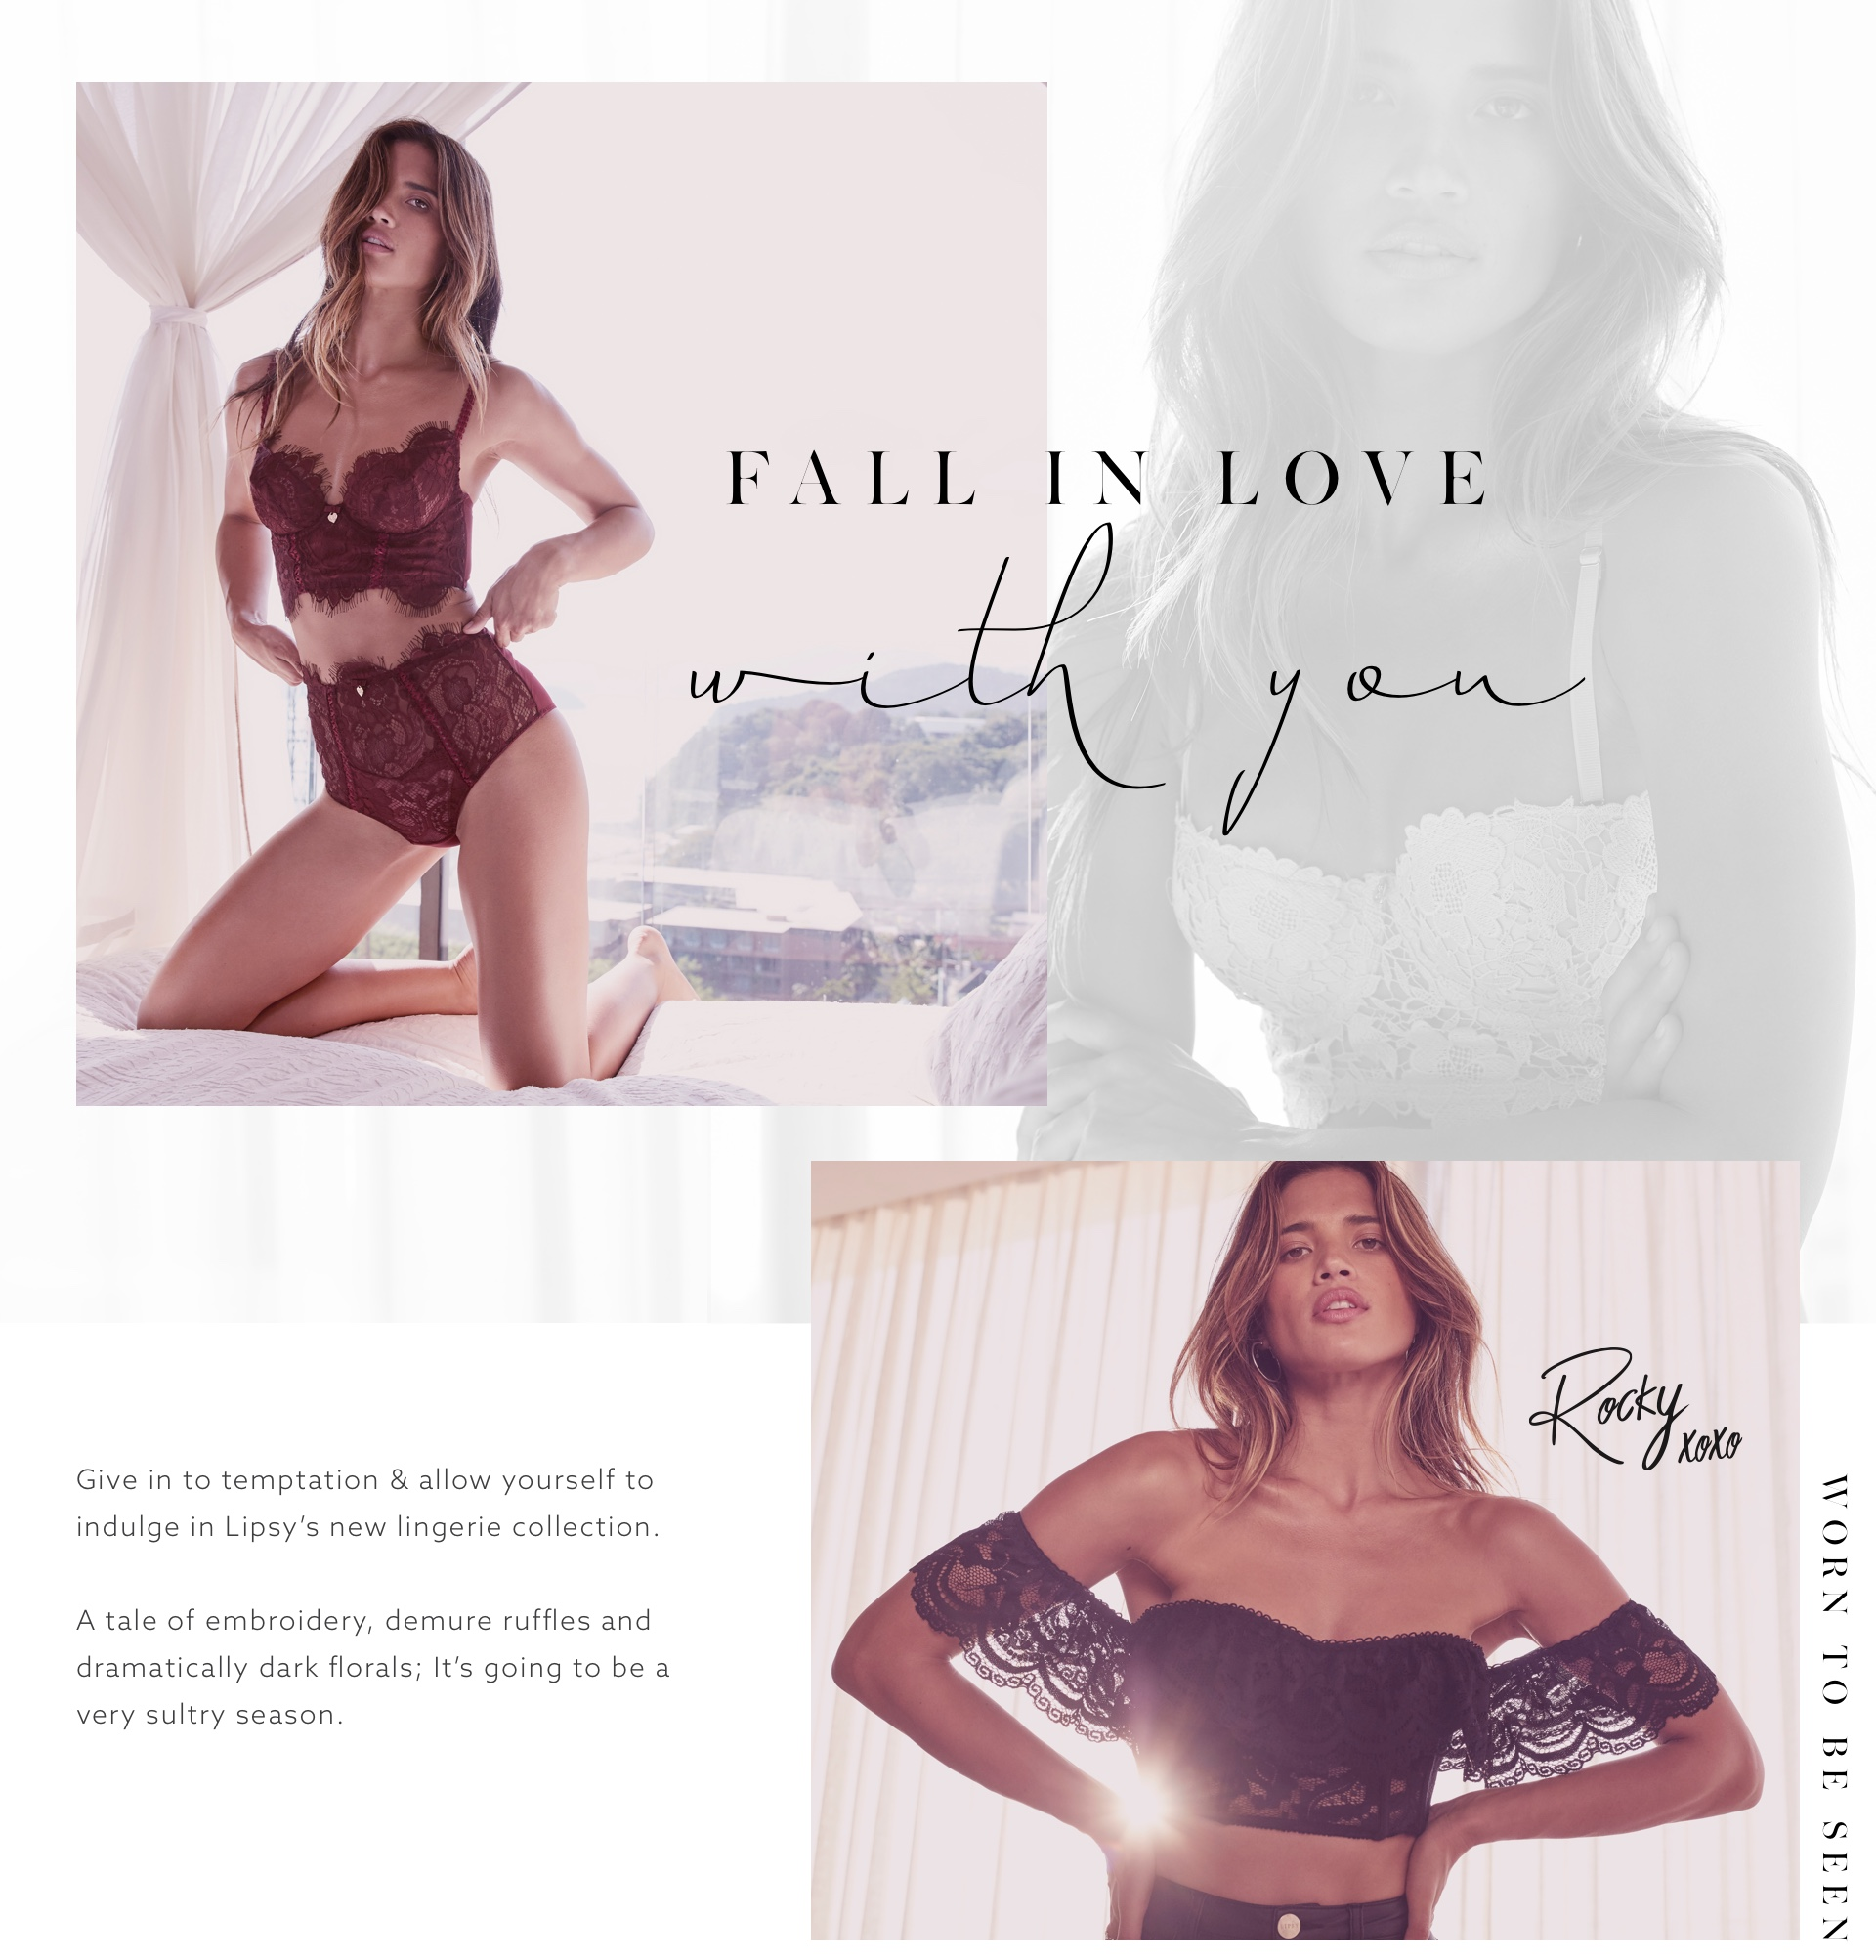 Fall in love with you - new lingerie collection